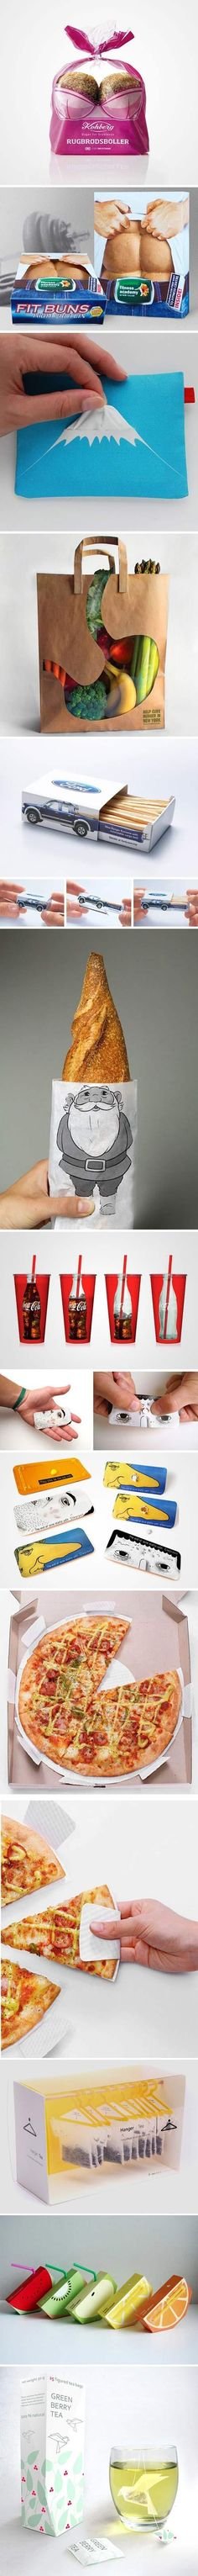 #Creative Packaging #Guerrilla #Marketing http://arcreactions.com/